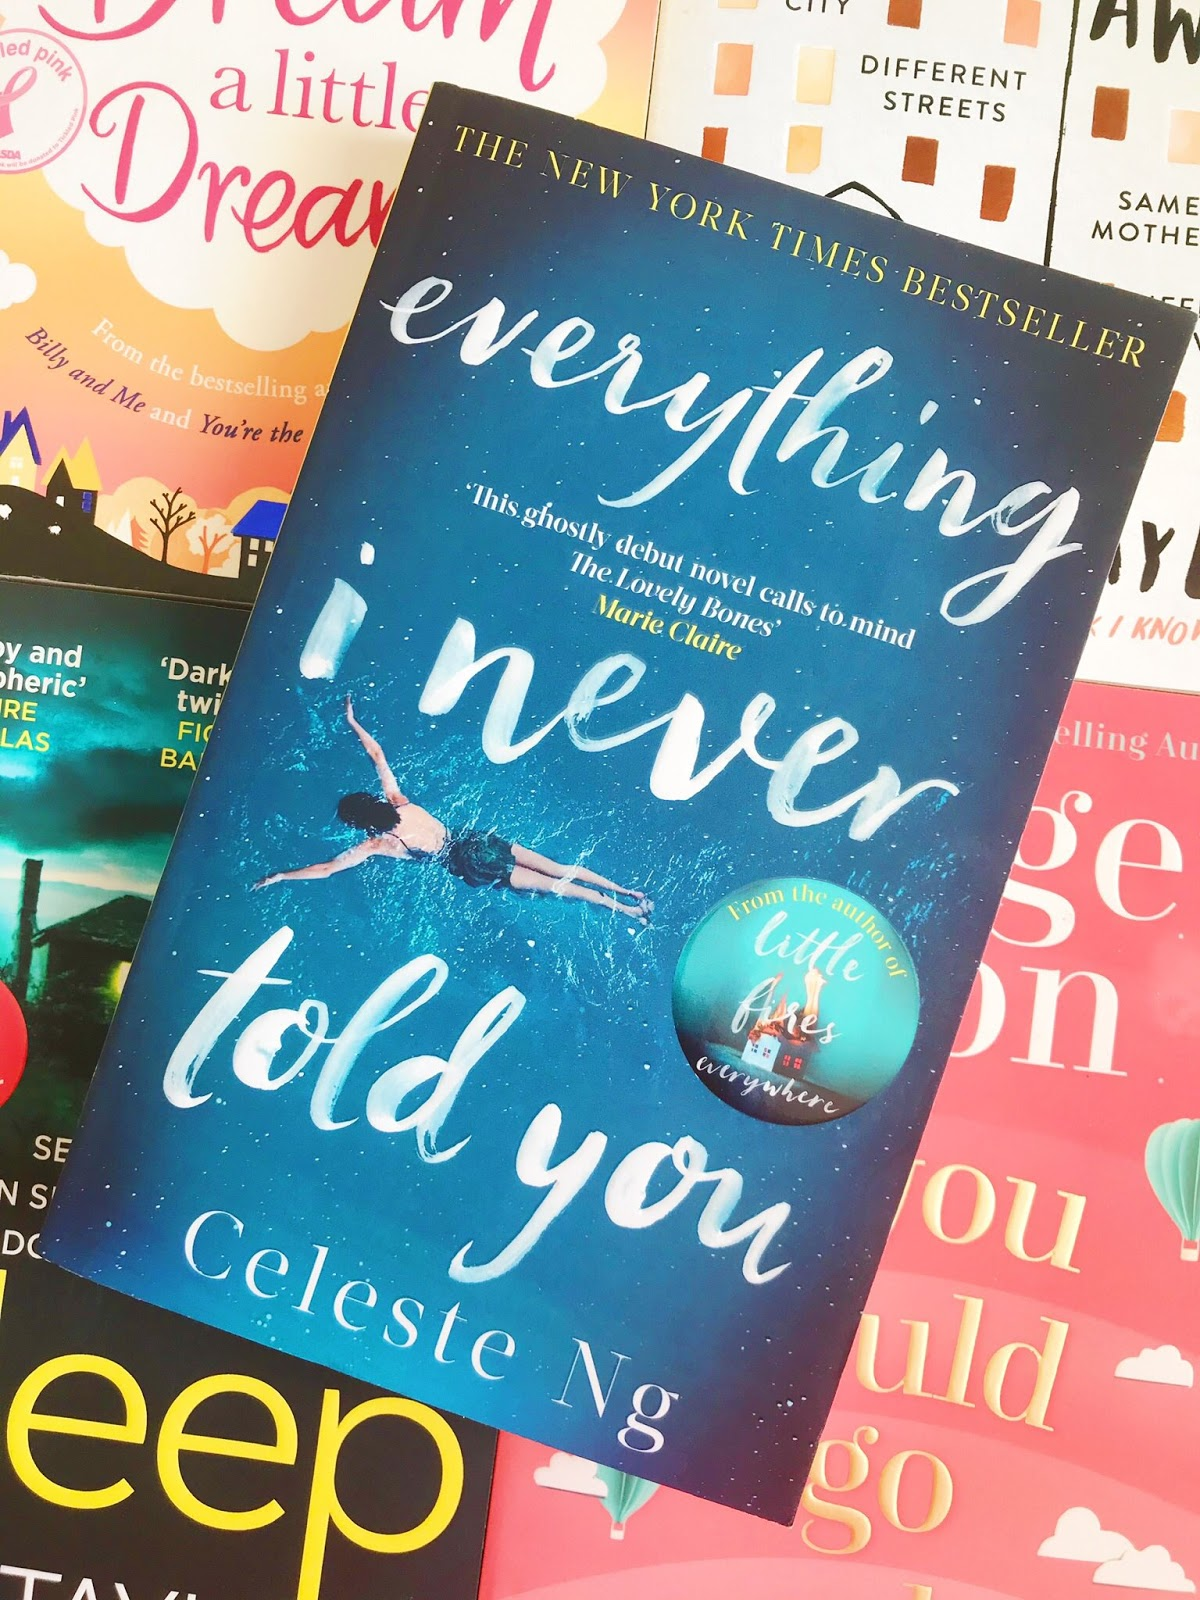 Everything I Never Told You by Celeste NG on top of 4 other books